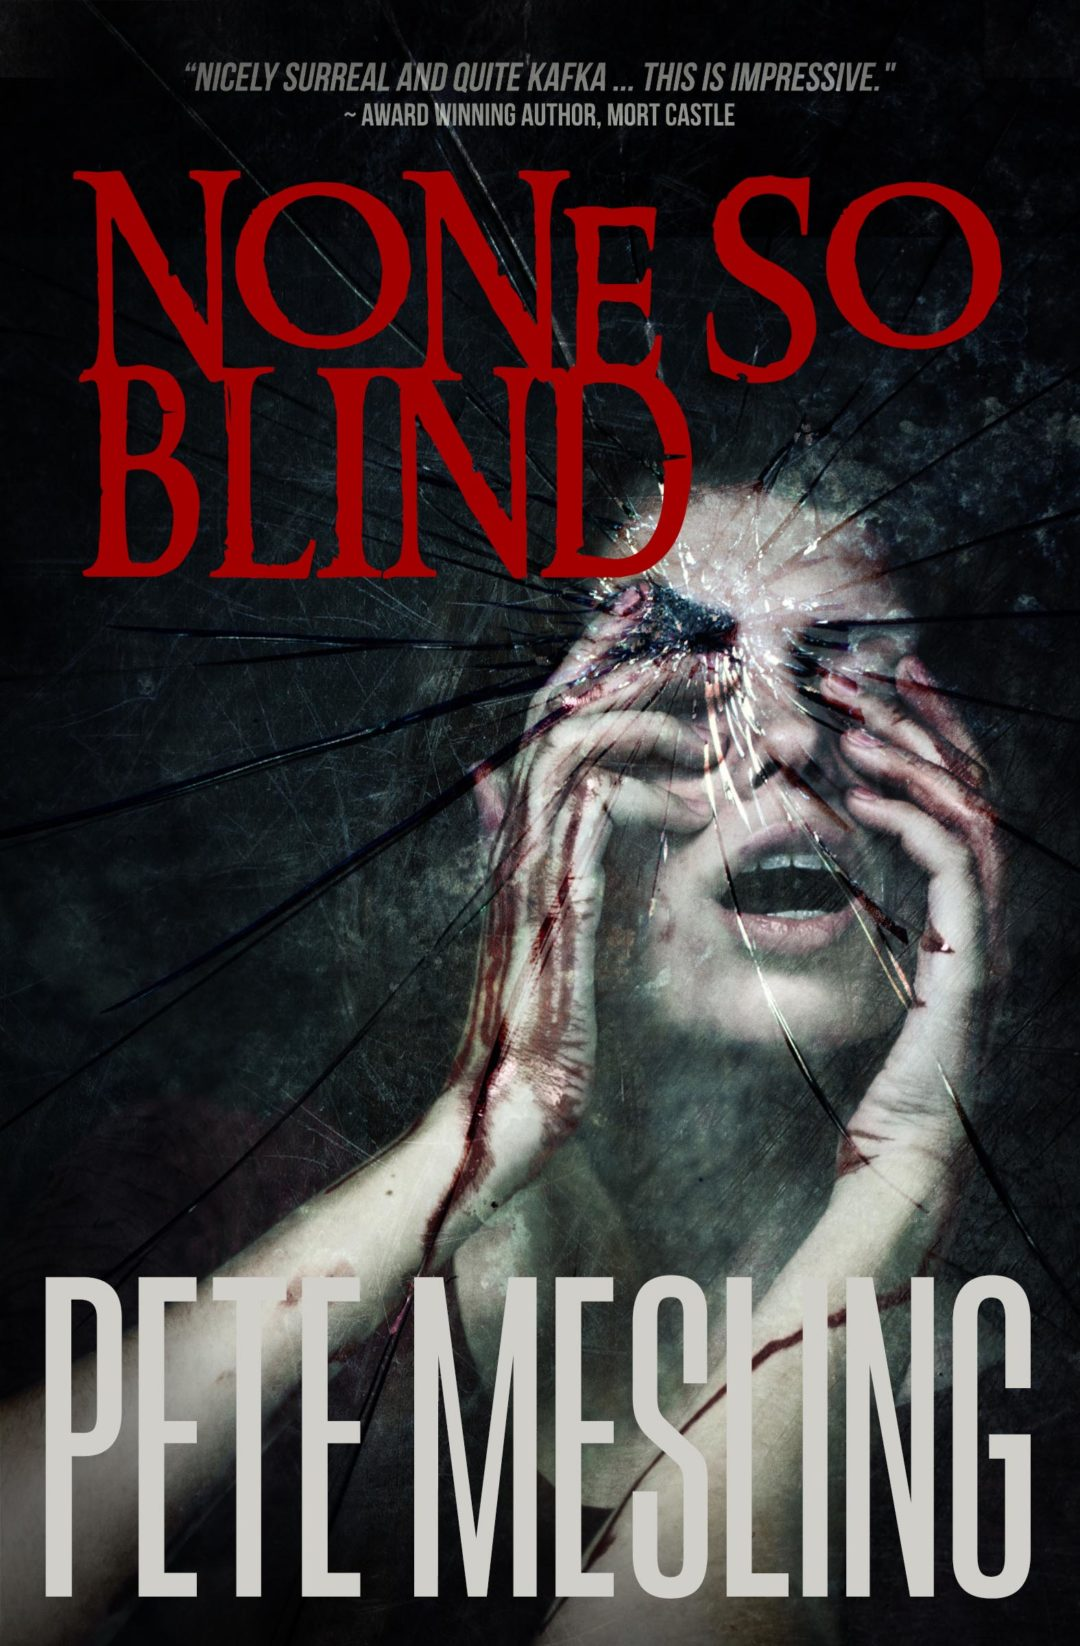 None So Blind by Pete Mesling Book